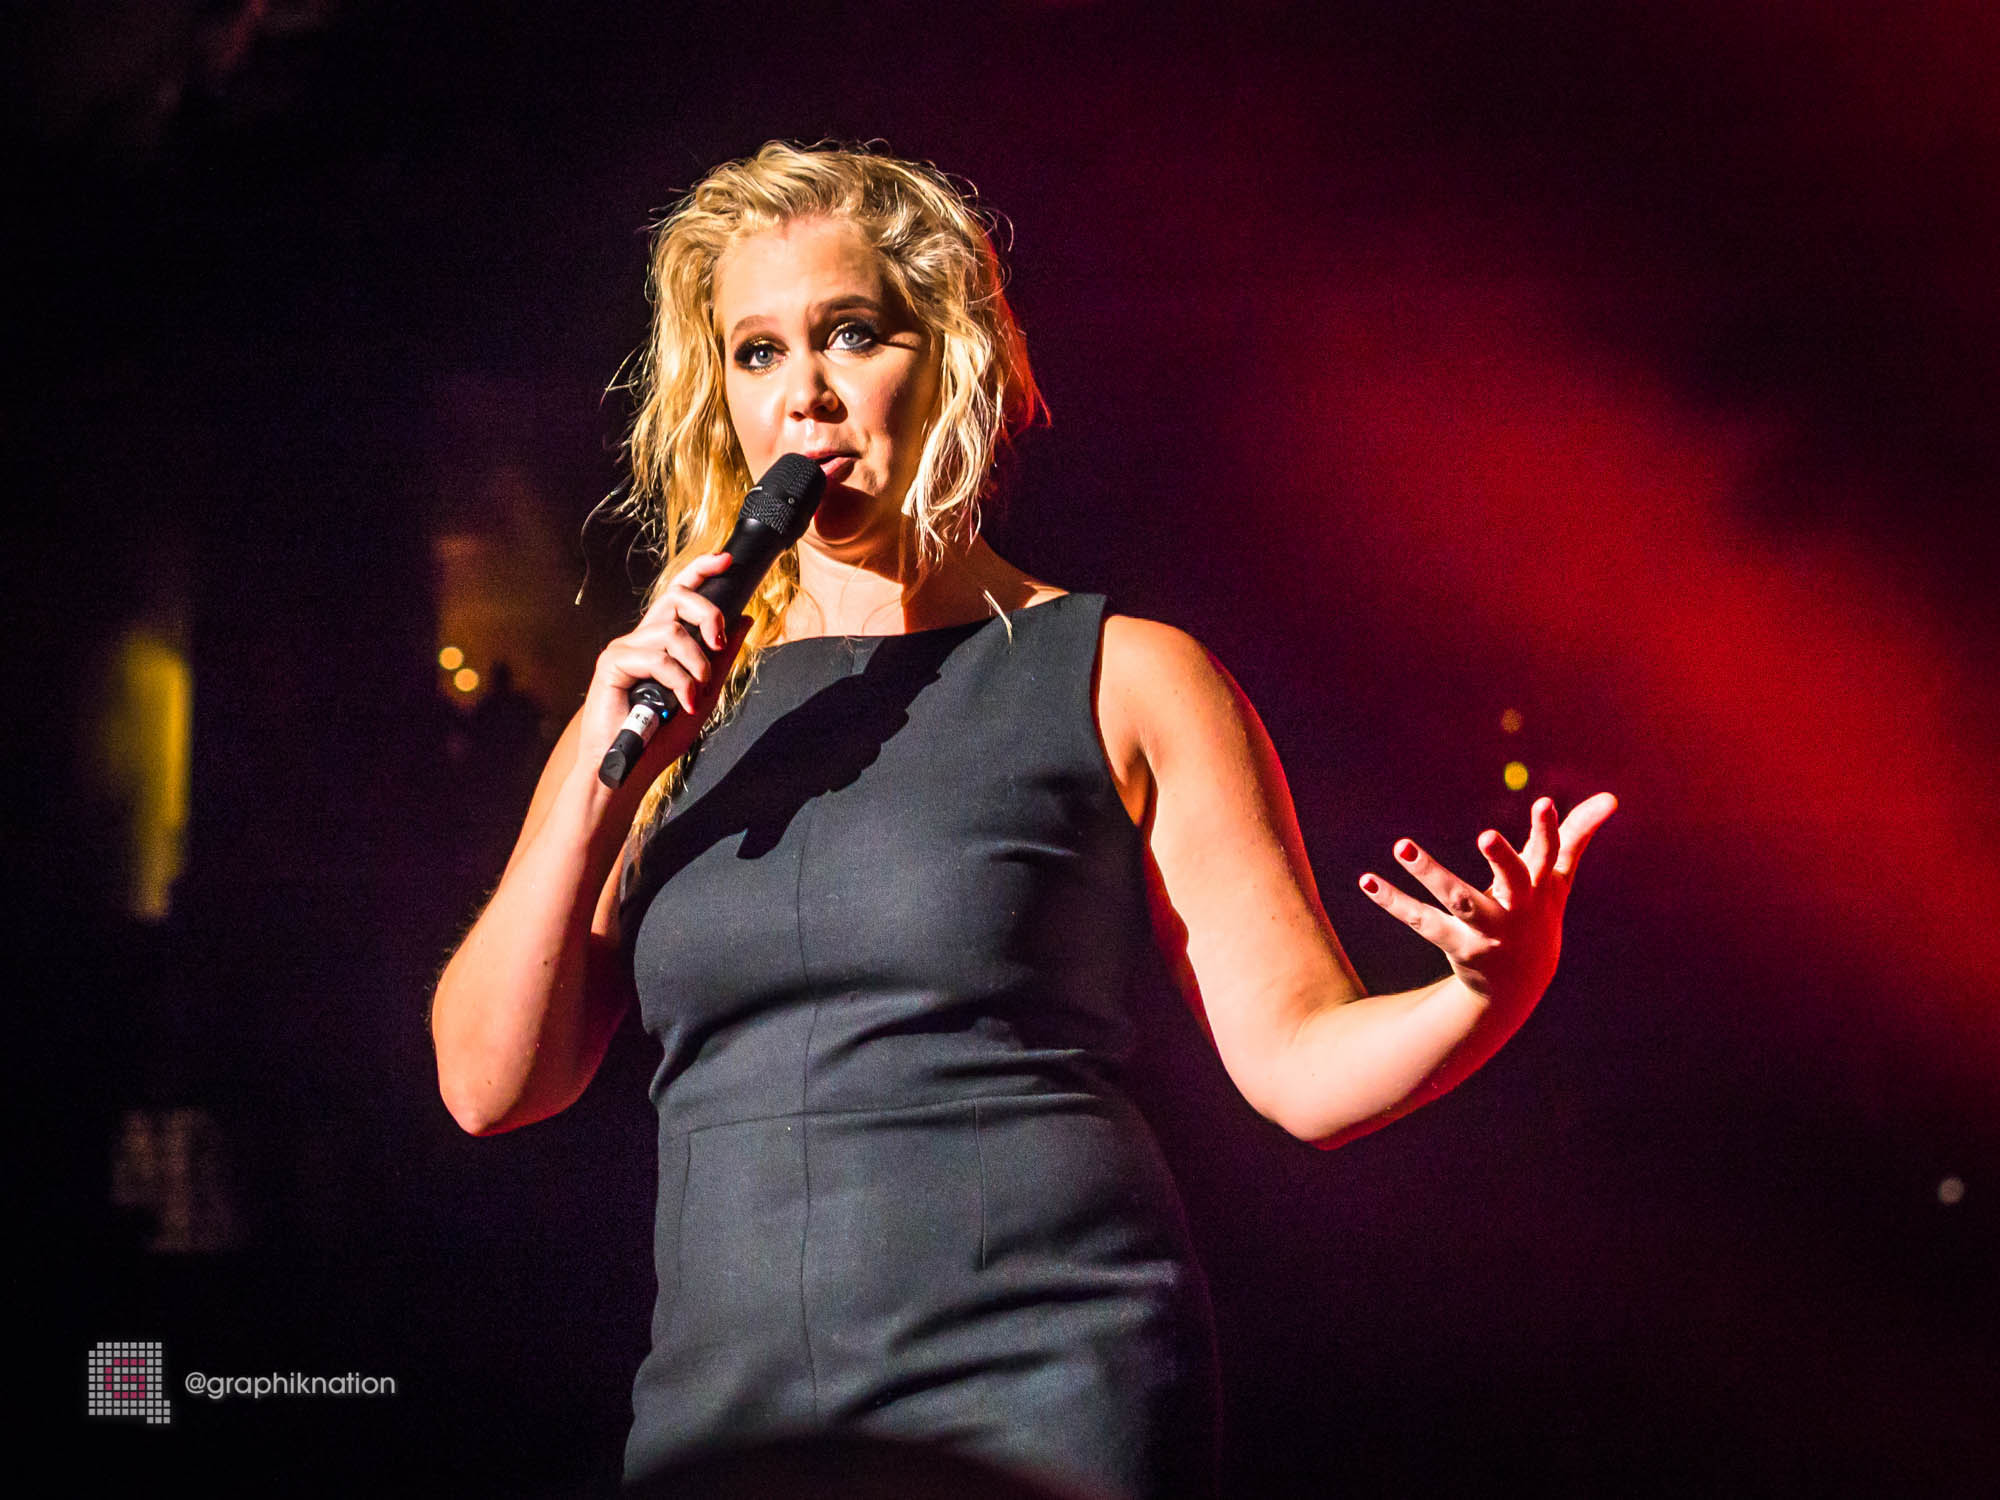 16 amy schumer wallpapers hd download